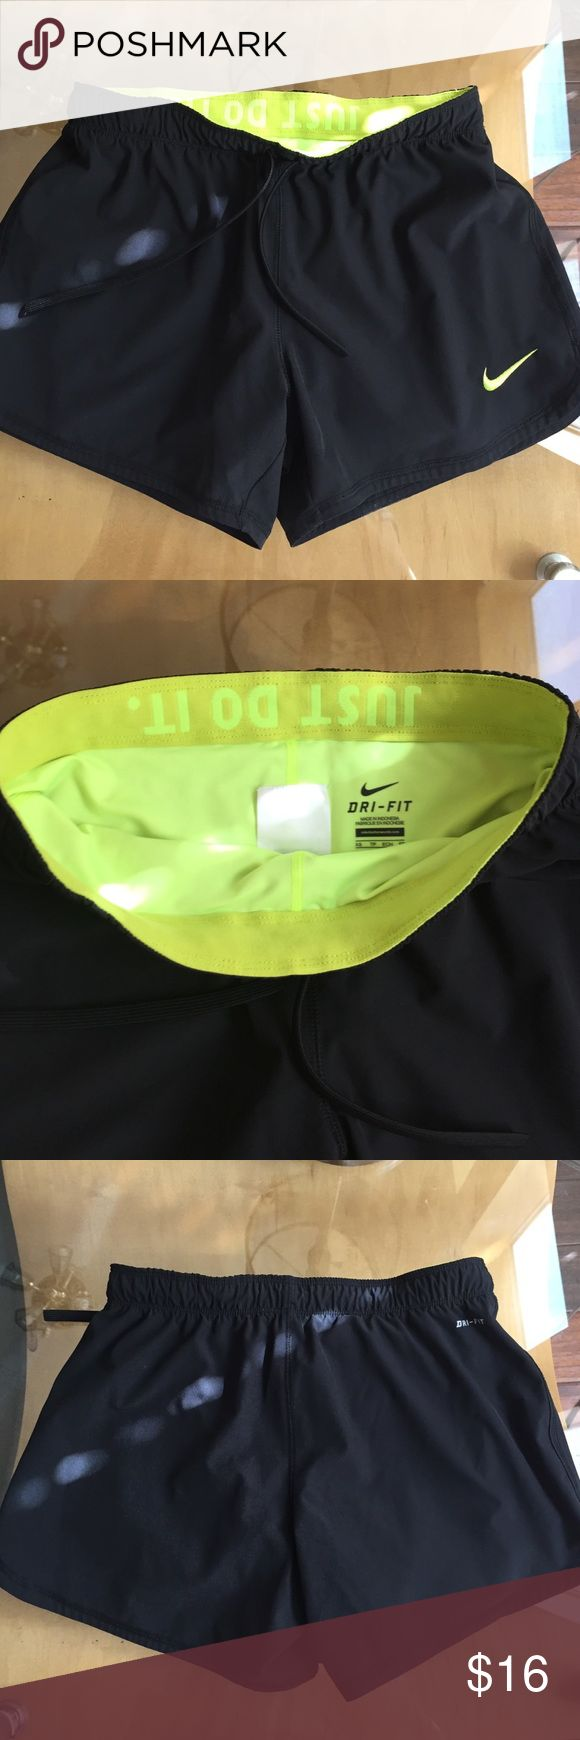 Nike Dri Fit Shorts Nike Dri Fit Shorts. Black with yellow bloomers . Drawstring. Had small hole as indicated in pic inside the seam of yellow shorts. Soft and comfortable. Otherwise in good condition. Nike Shorts